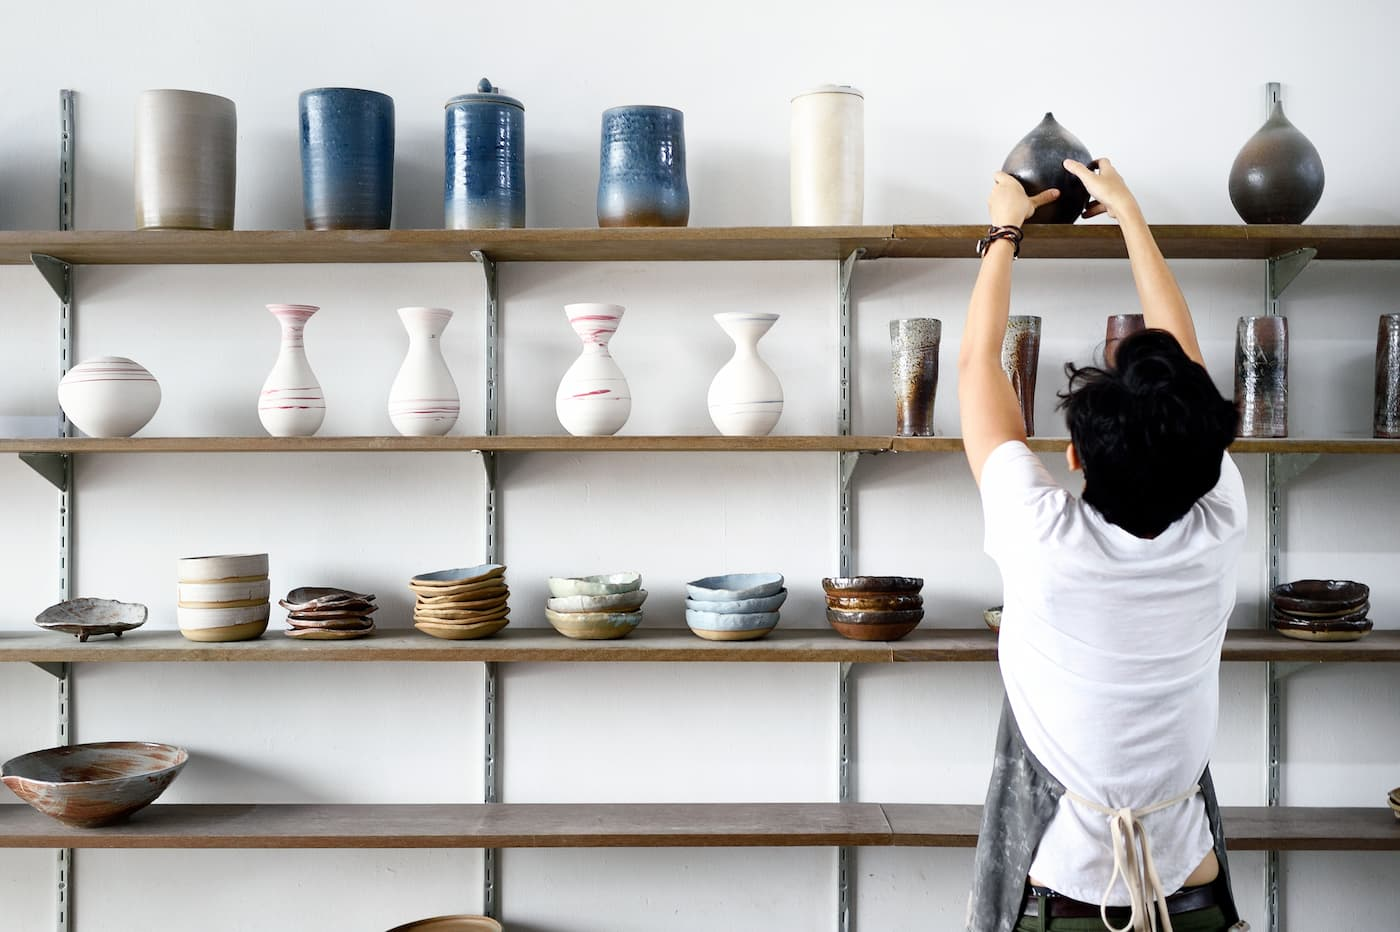 Store owner stocking pottery